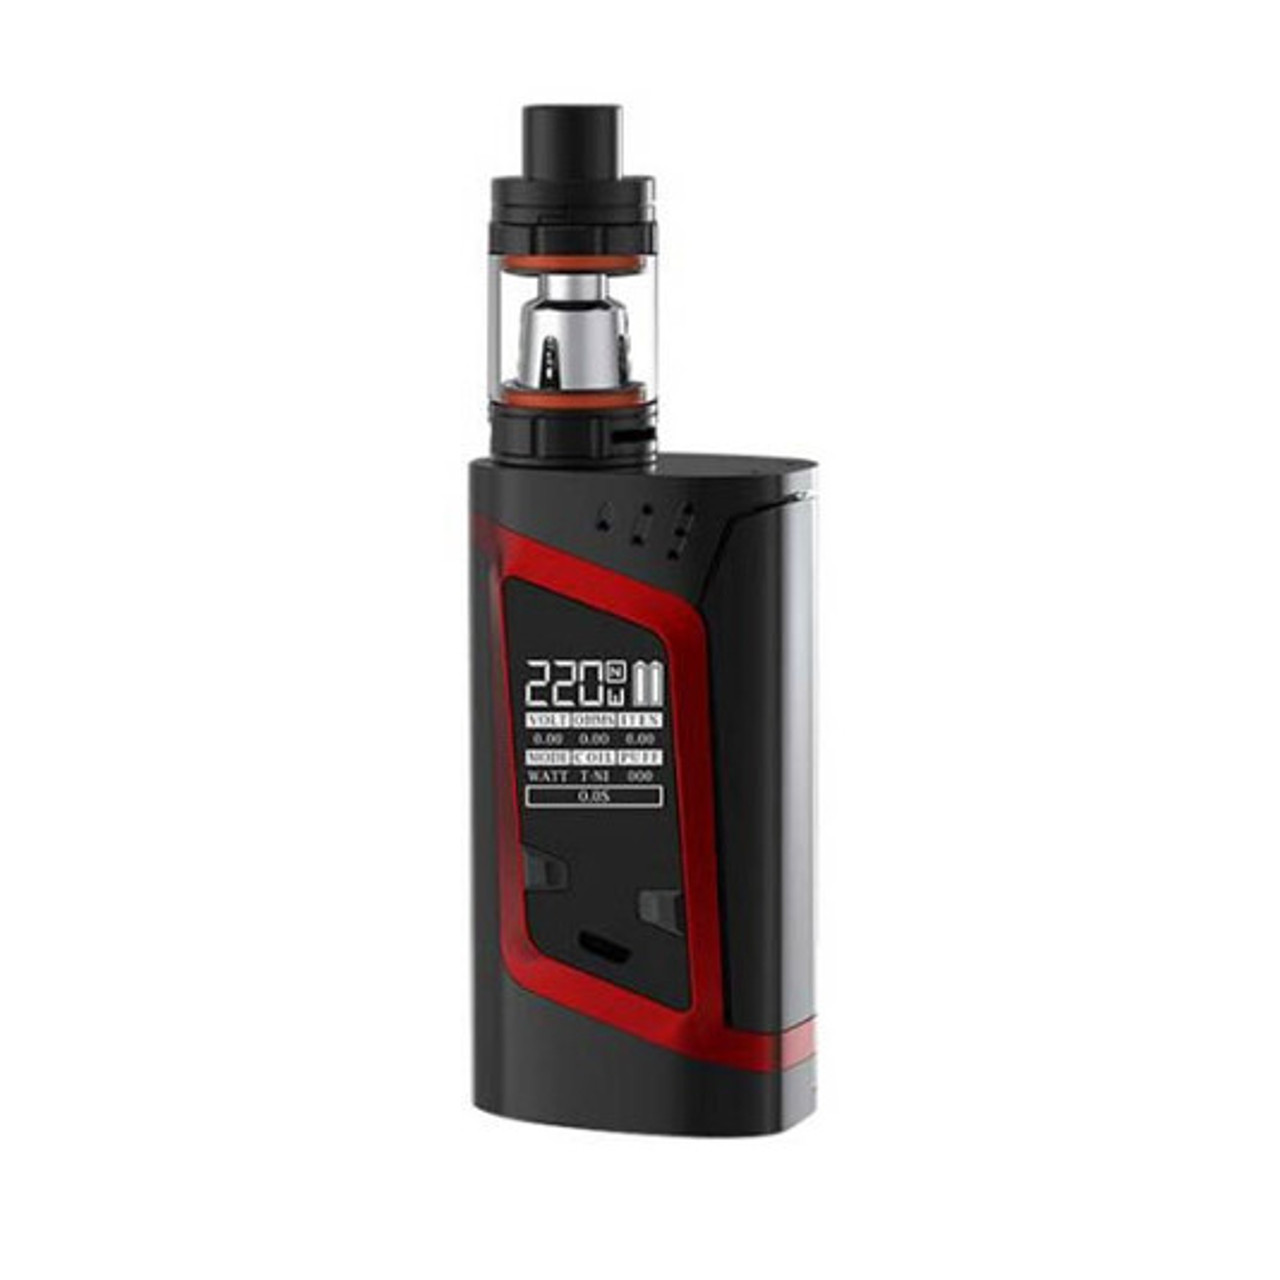 Smok Alien direct-to-lung vaping device